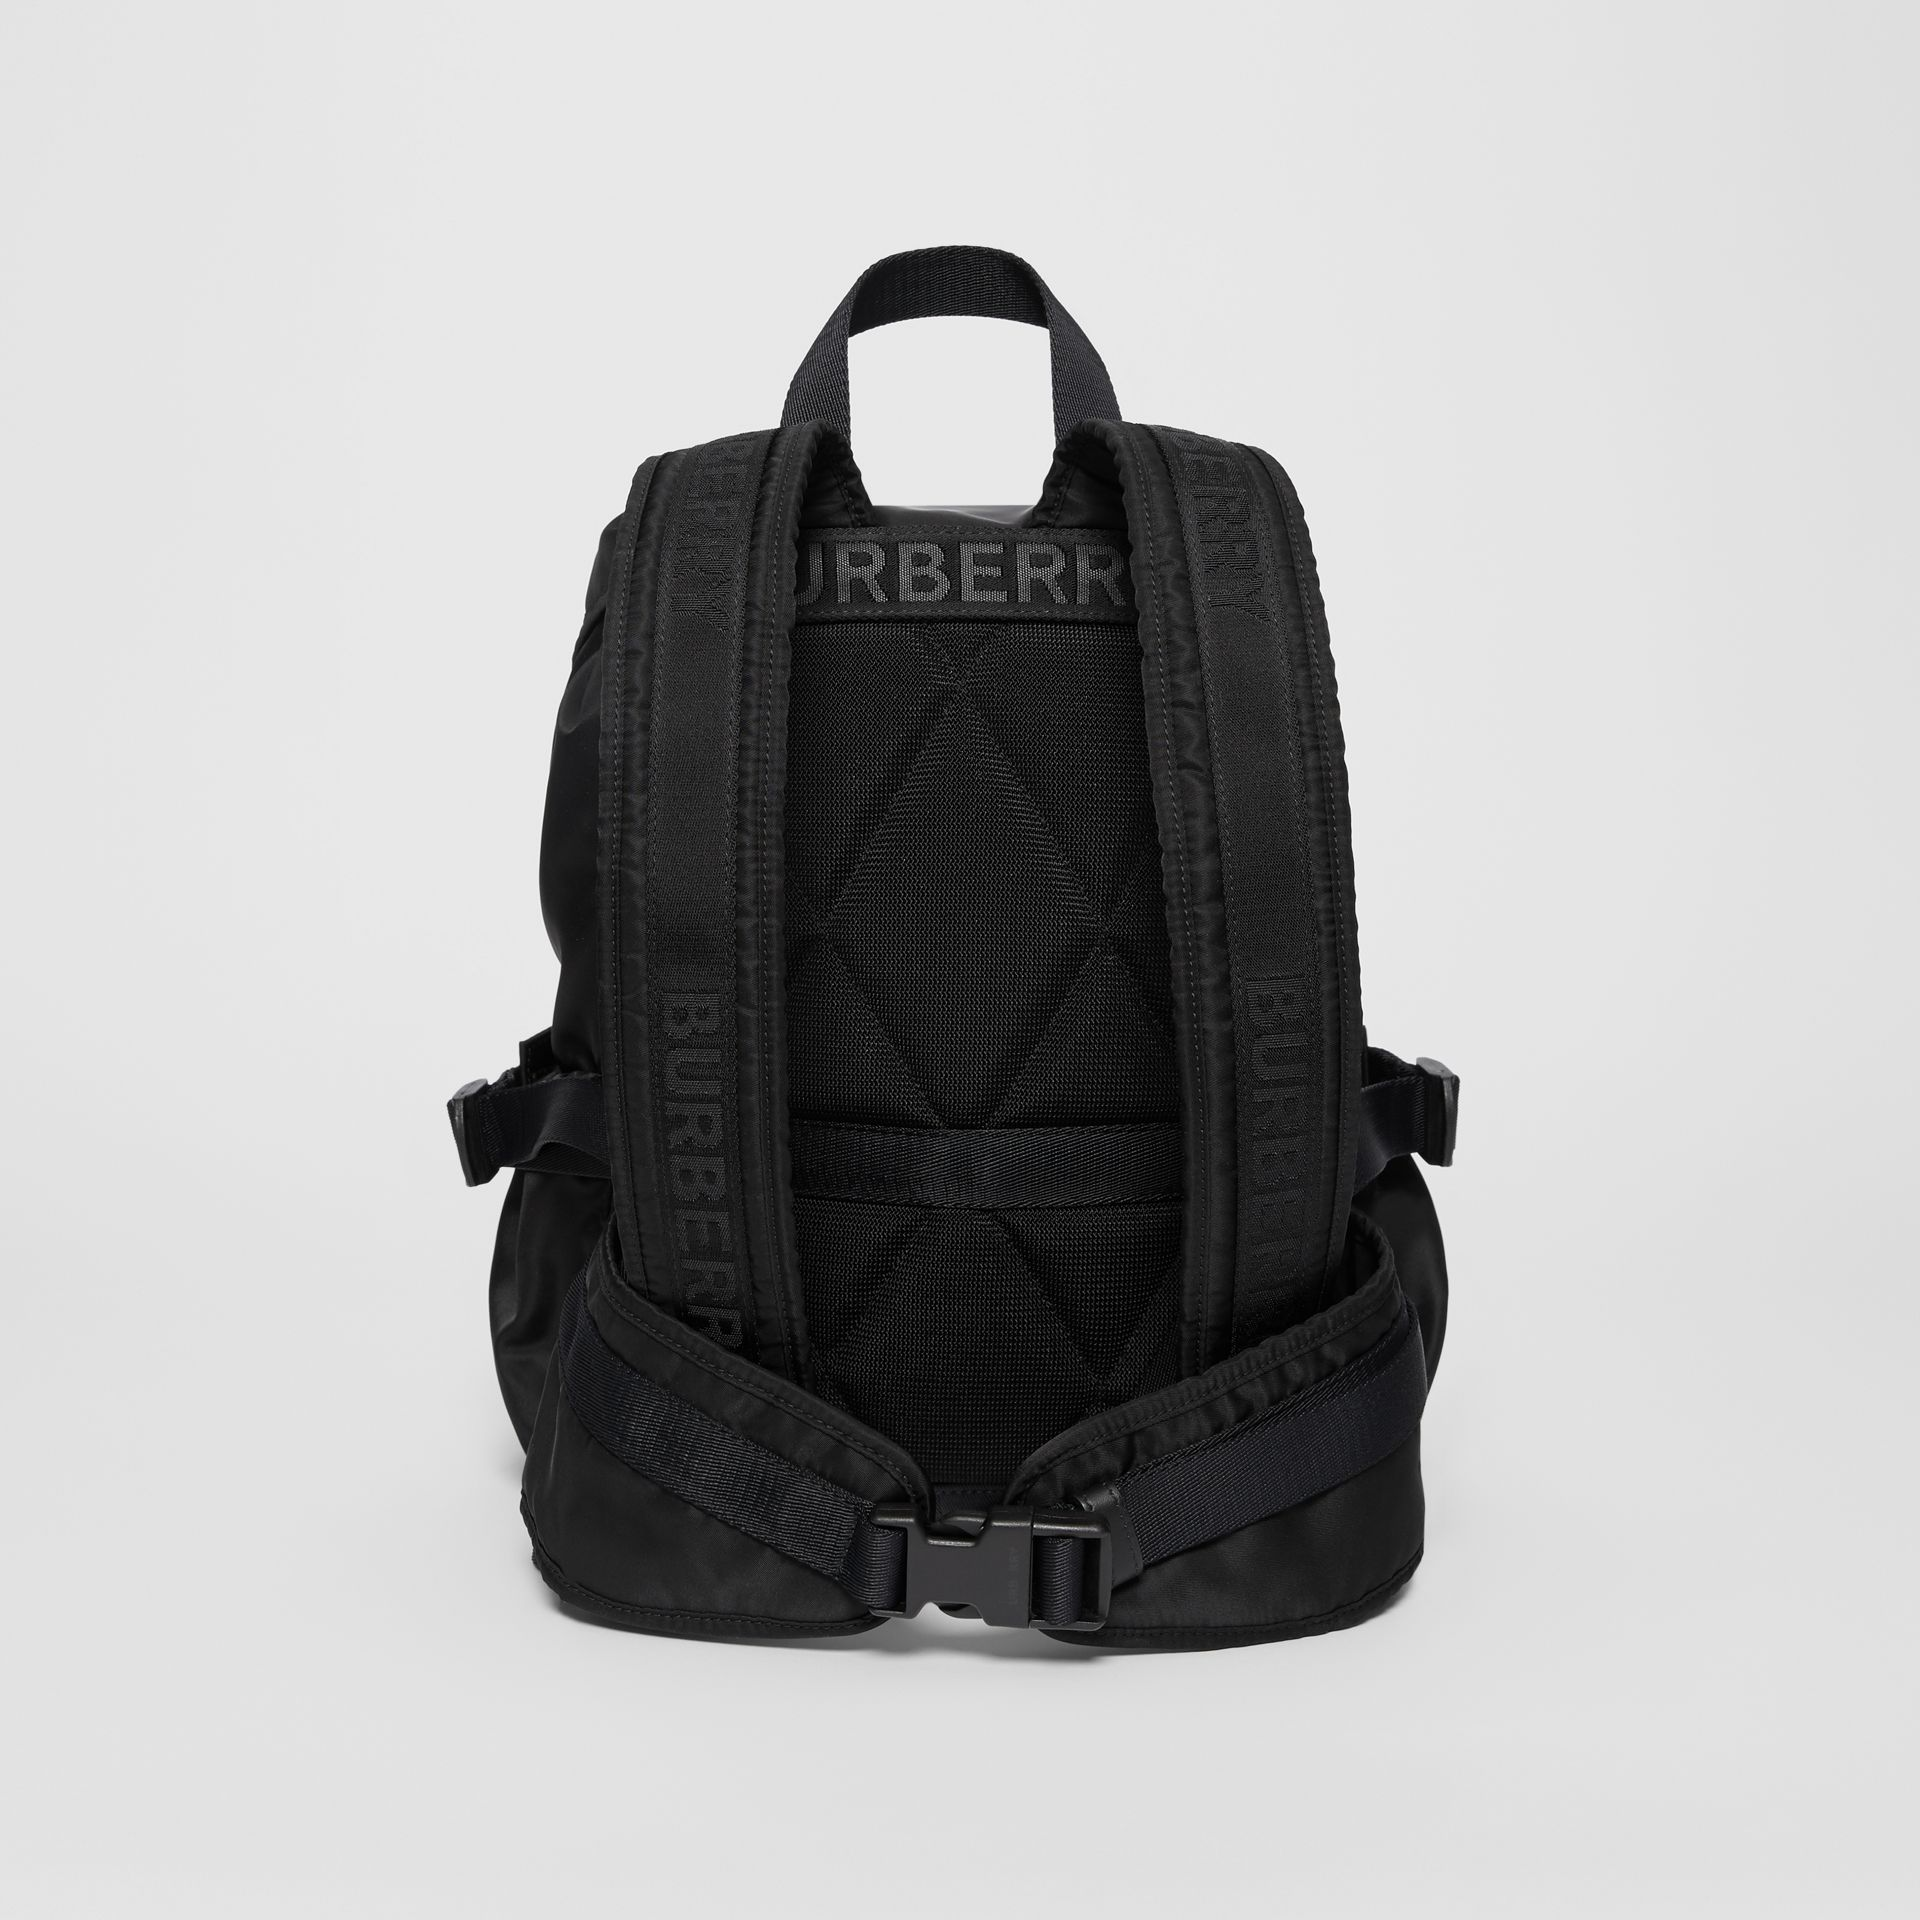 Logo Print Nylon Backpack in Black - Women | Burberry United Kingdom - gallery image 7